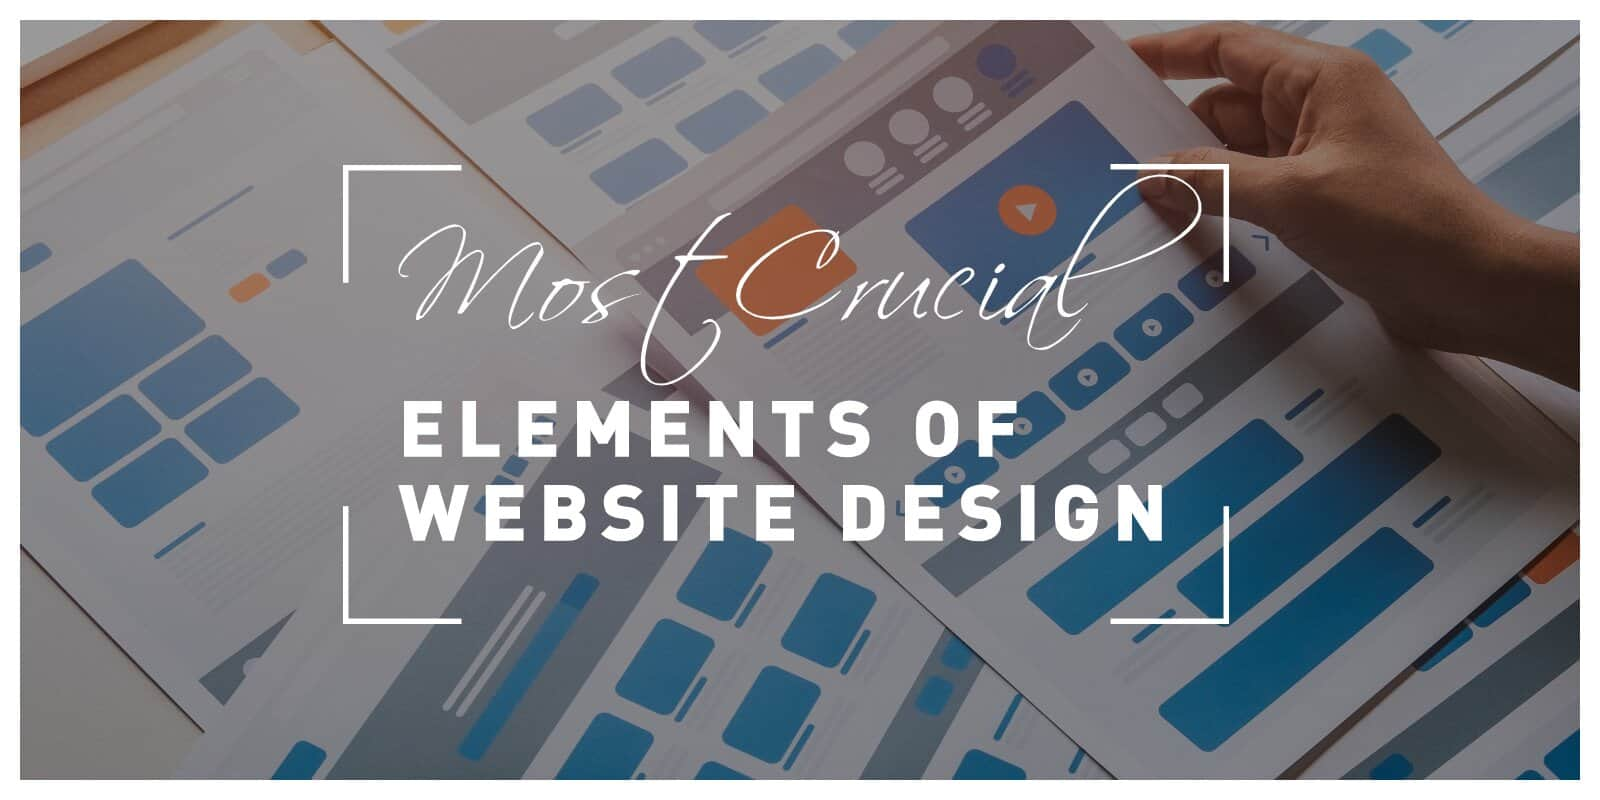 Top 10 Most Crucial Elements of Website Design